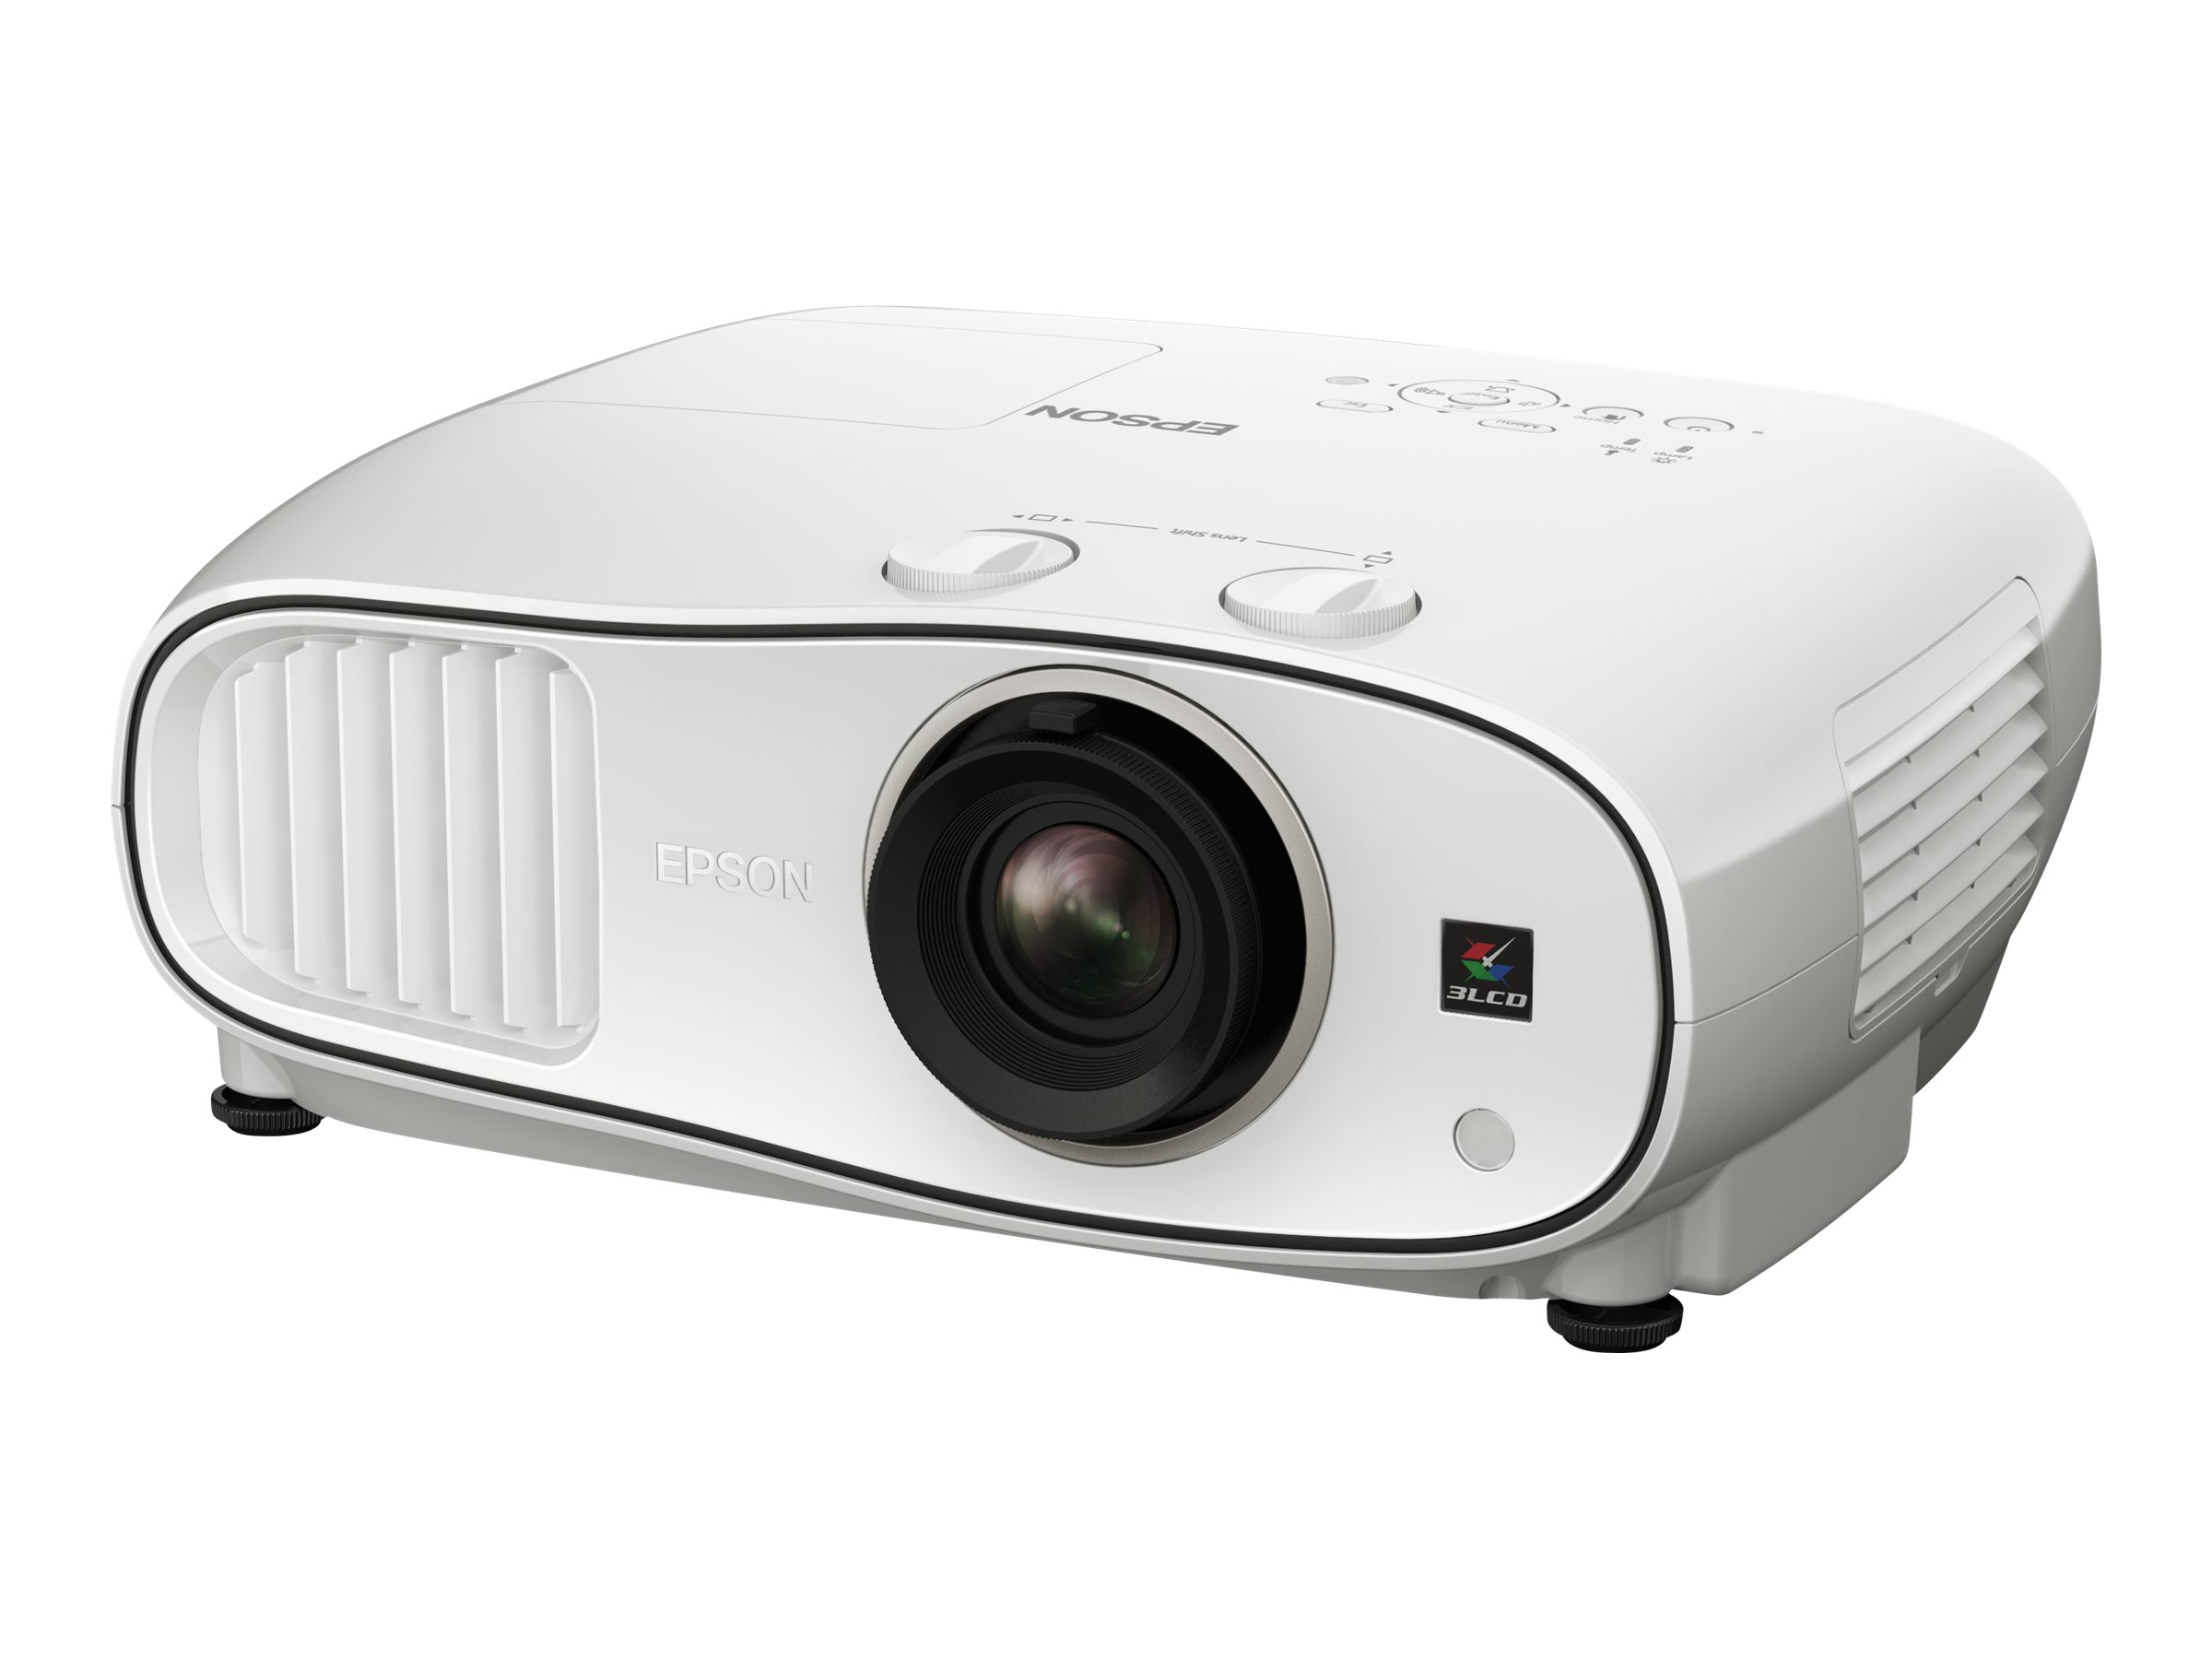 Epson EH-TW6700 - 3-LCD-Projektor - 3D - 3000 lm (white) - 3000 lm (Farbe) - Full HD (1920 x 1080)